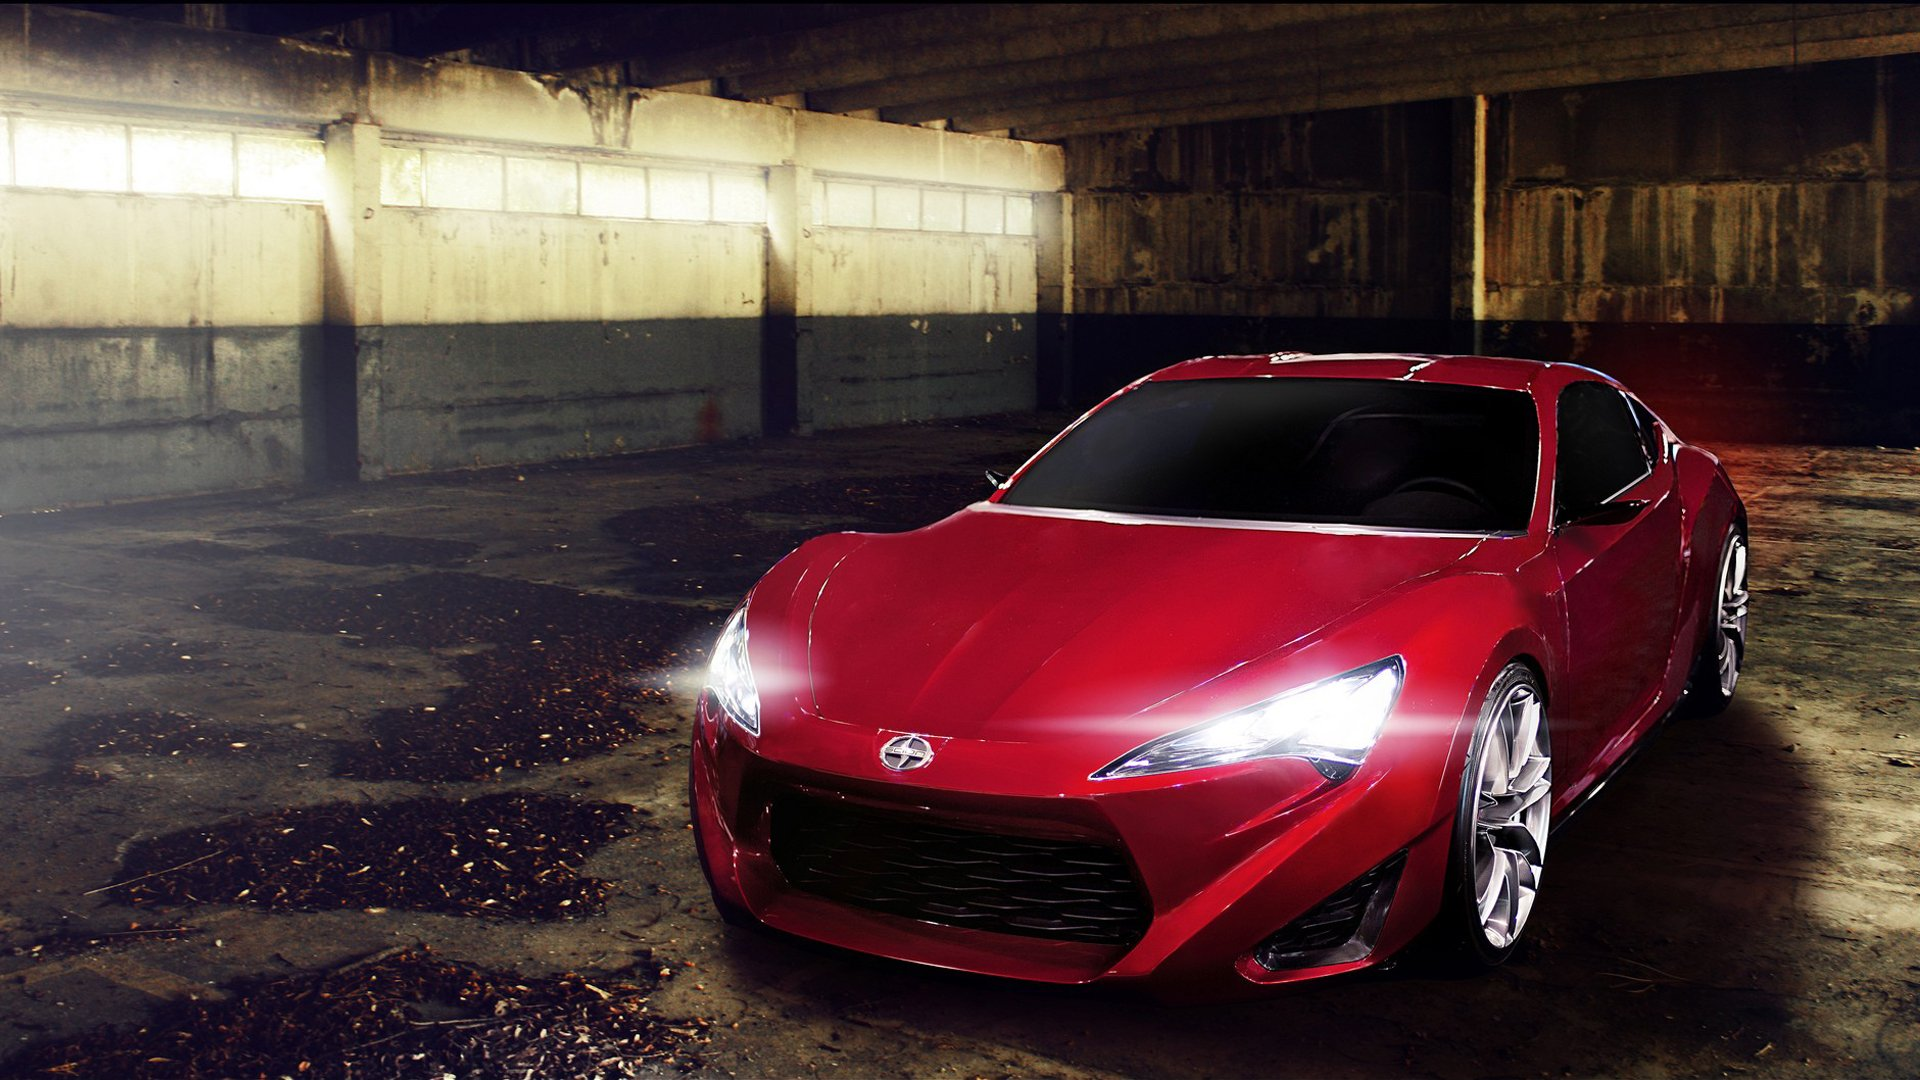 Fast And Furious Cars Hd Wallpapers 9 Fantastic Hd Scion Frs Car Wallpapers Hdwallsource Com